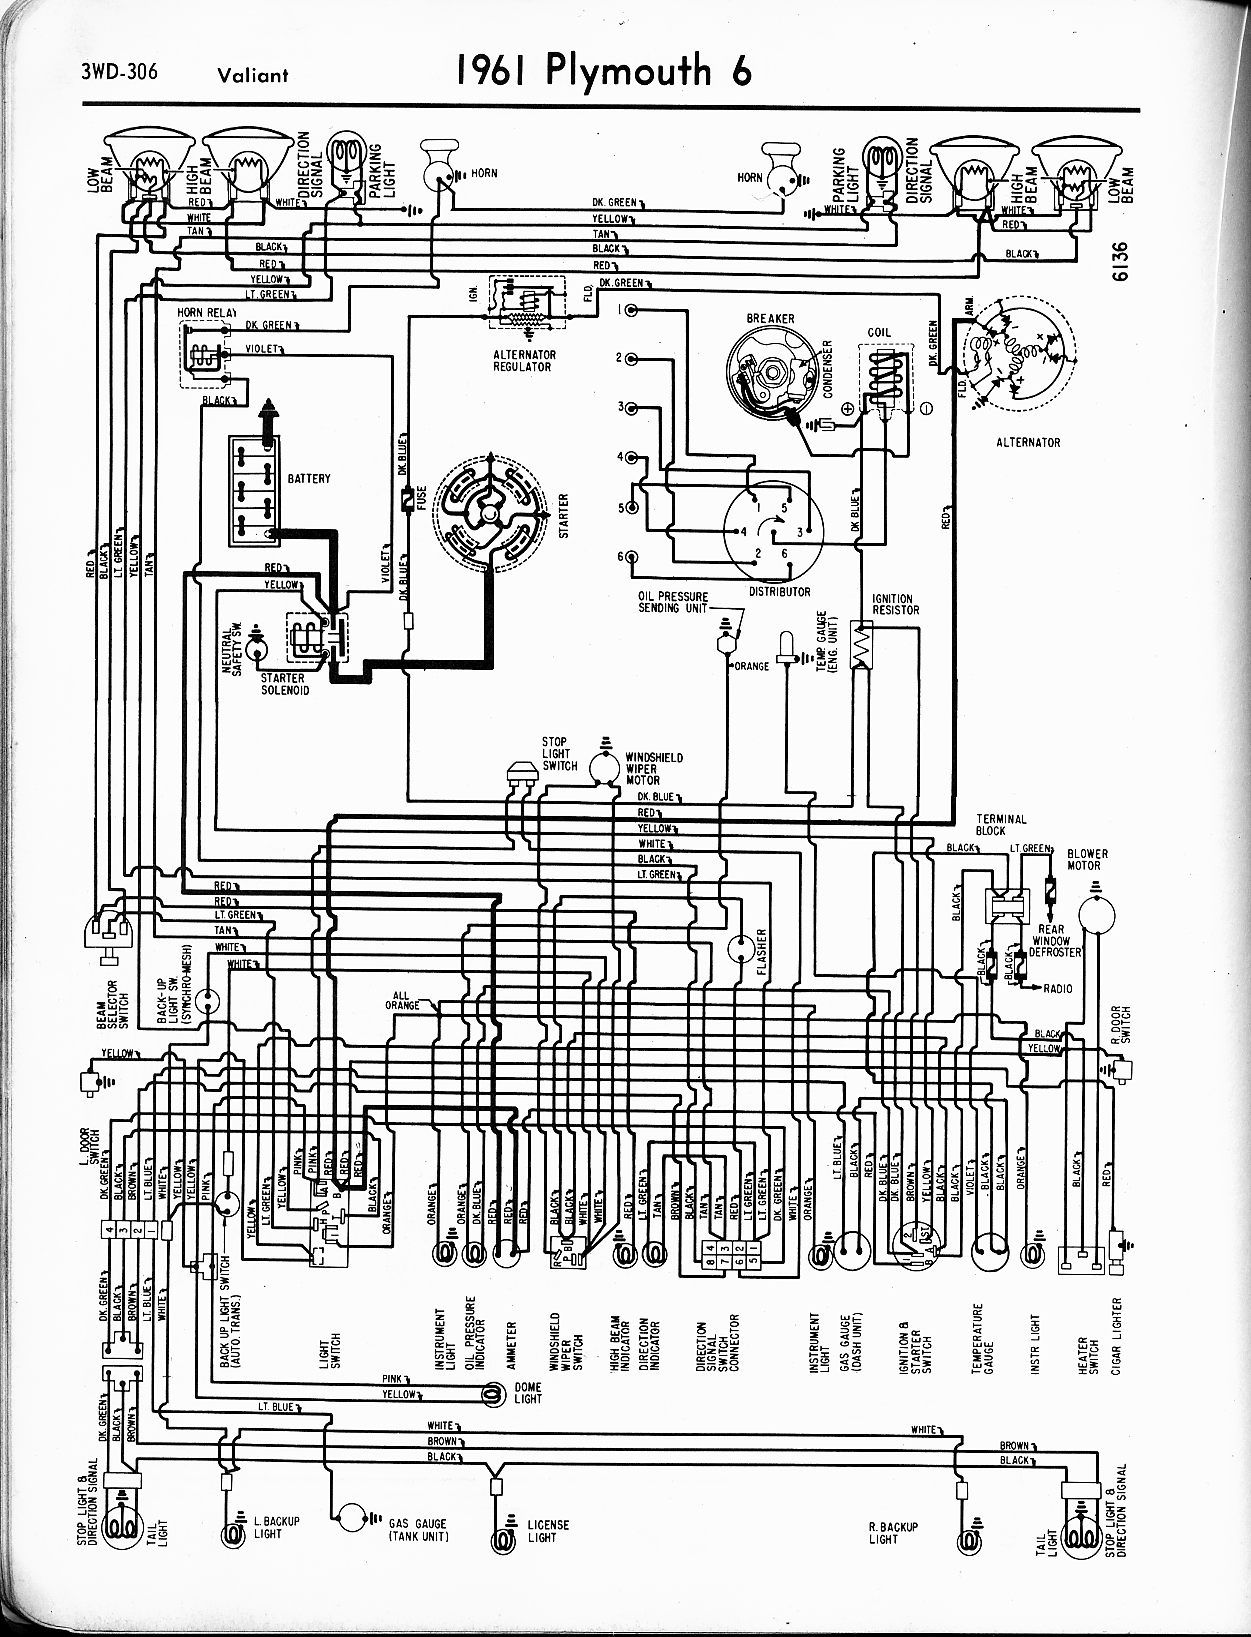 1964 Plymouth Sport Fury Wiring Diagram - Wiring Diagram